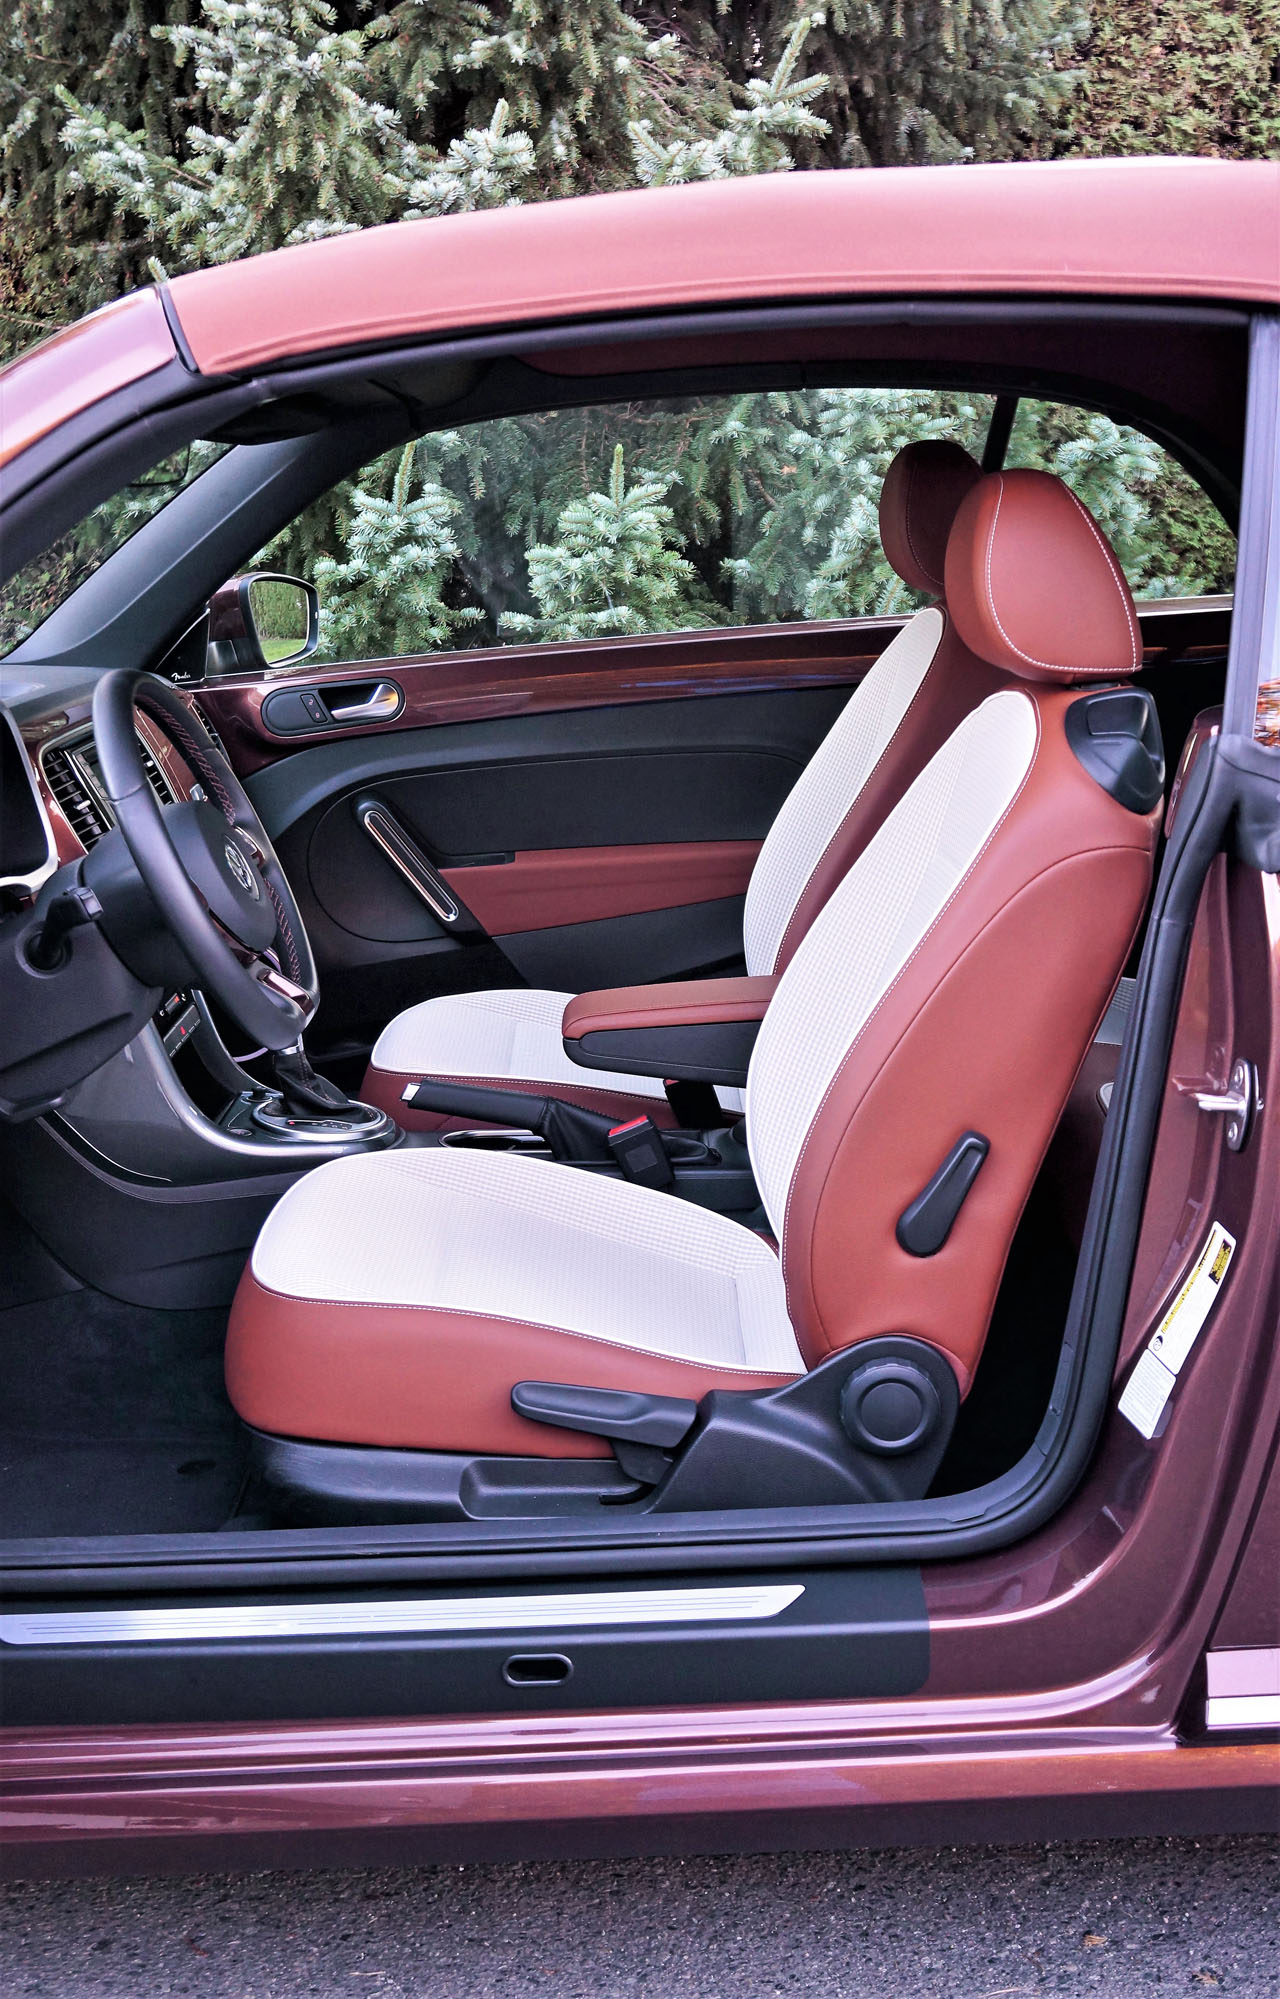 vw photo front seat gallery dune seats volkswagen beetle image roadish off covers features